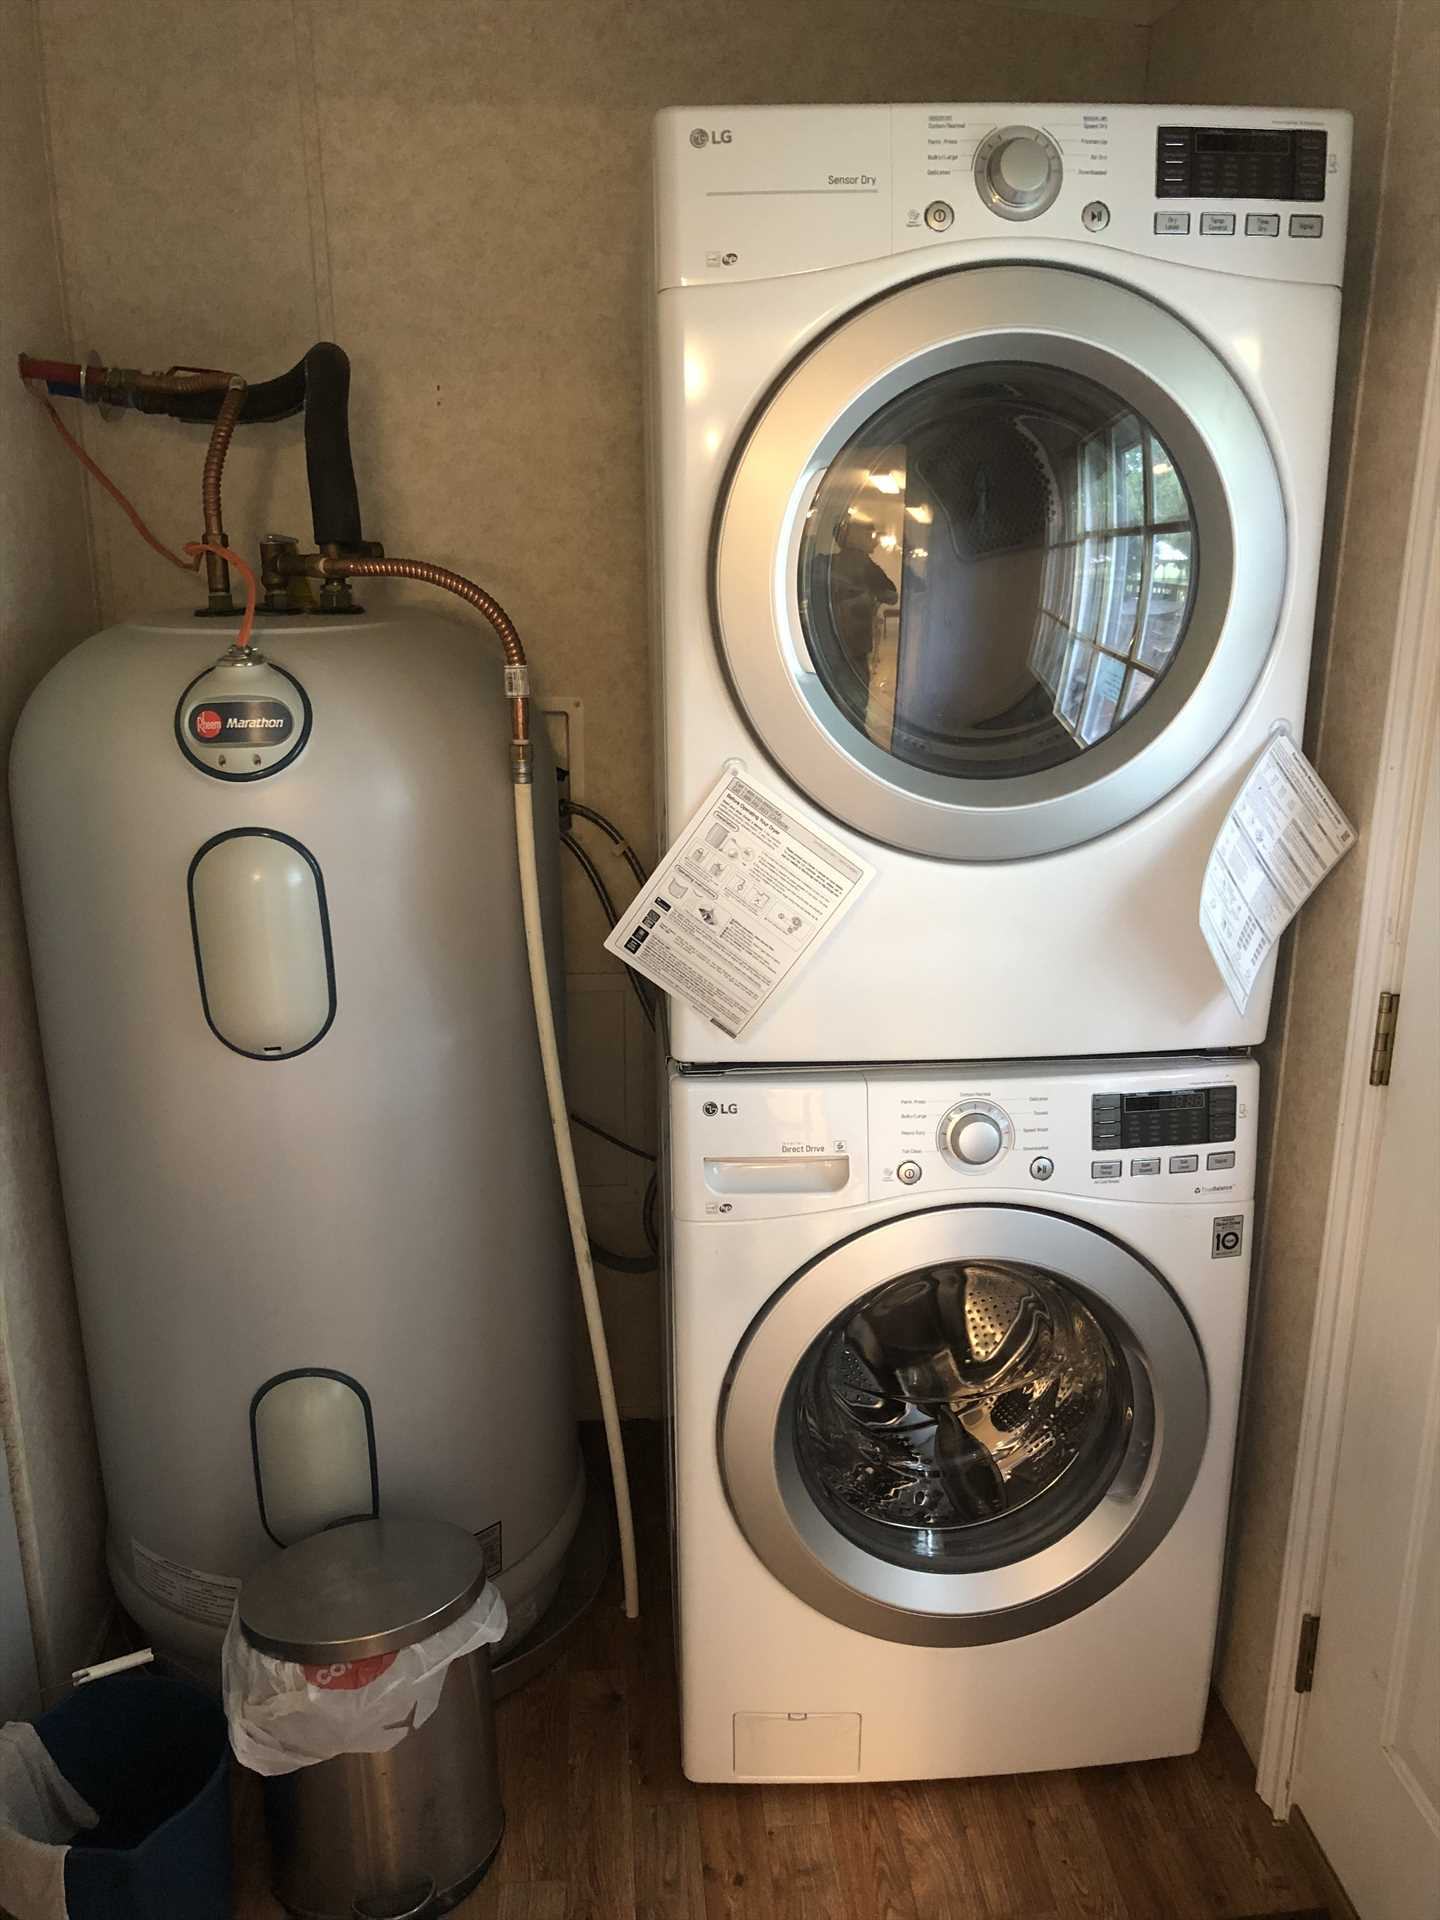 Drive away the post-vacation dirty laundry blues with this handy washer and dryer combo!